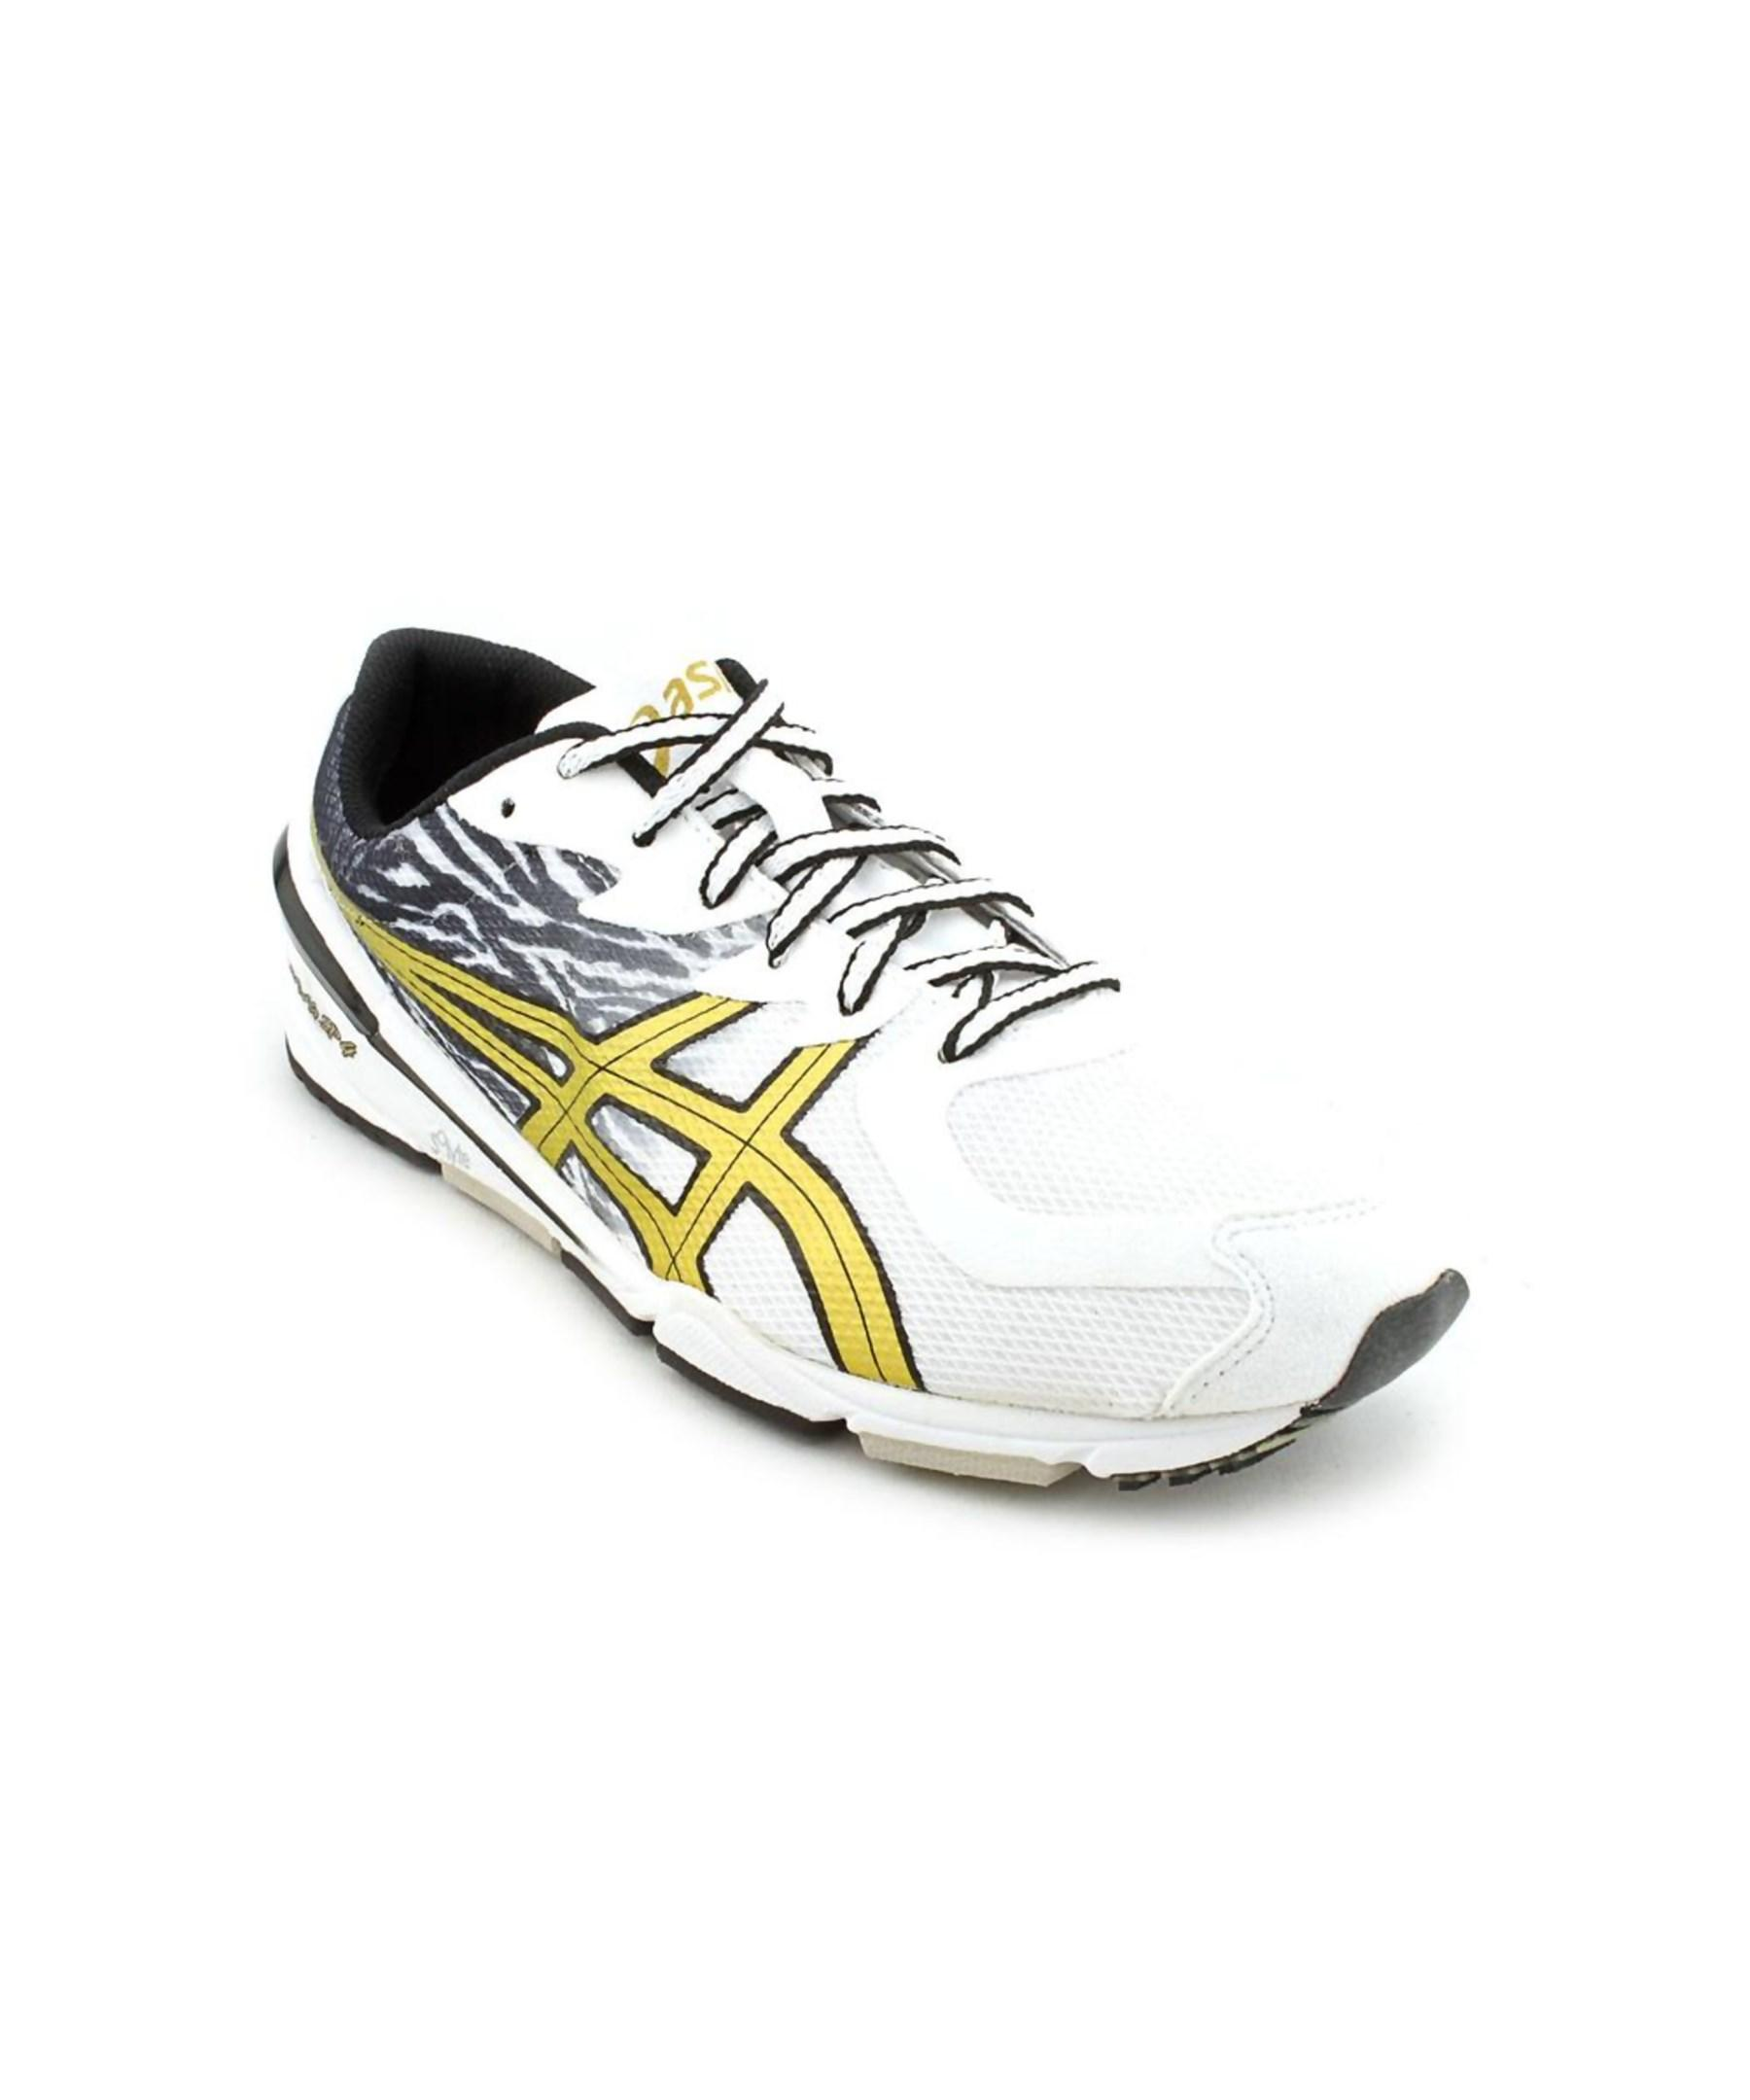 Asics Piranha Sp 4 Men Round Toe Synthetic White Running Shoe in ... 2f7139498469